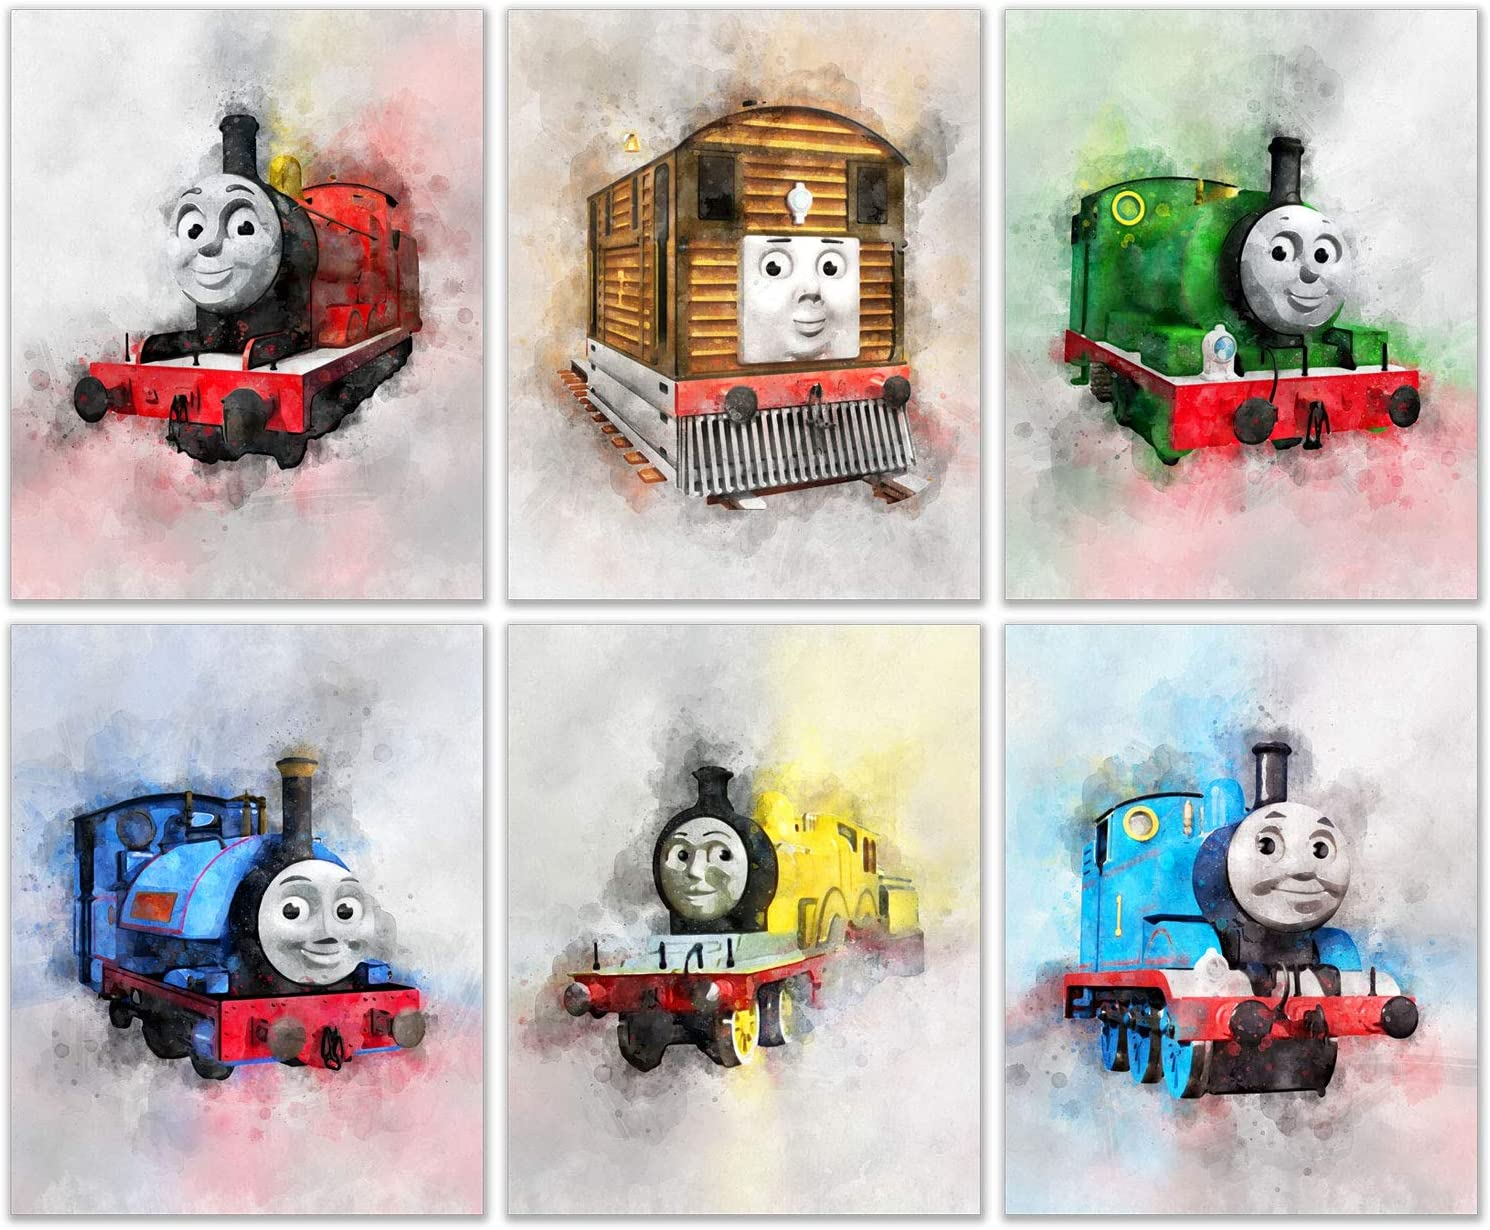 Thomas and Friends Watercolor Train Prints - Set of 6 (8 inches x 10 inches) Photos - Thomas Percy the Small Engine Toby James Molly Edward